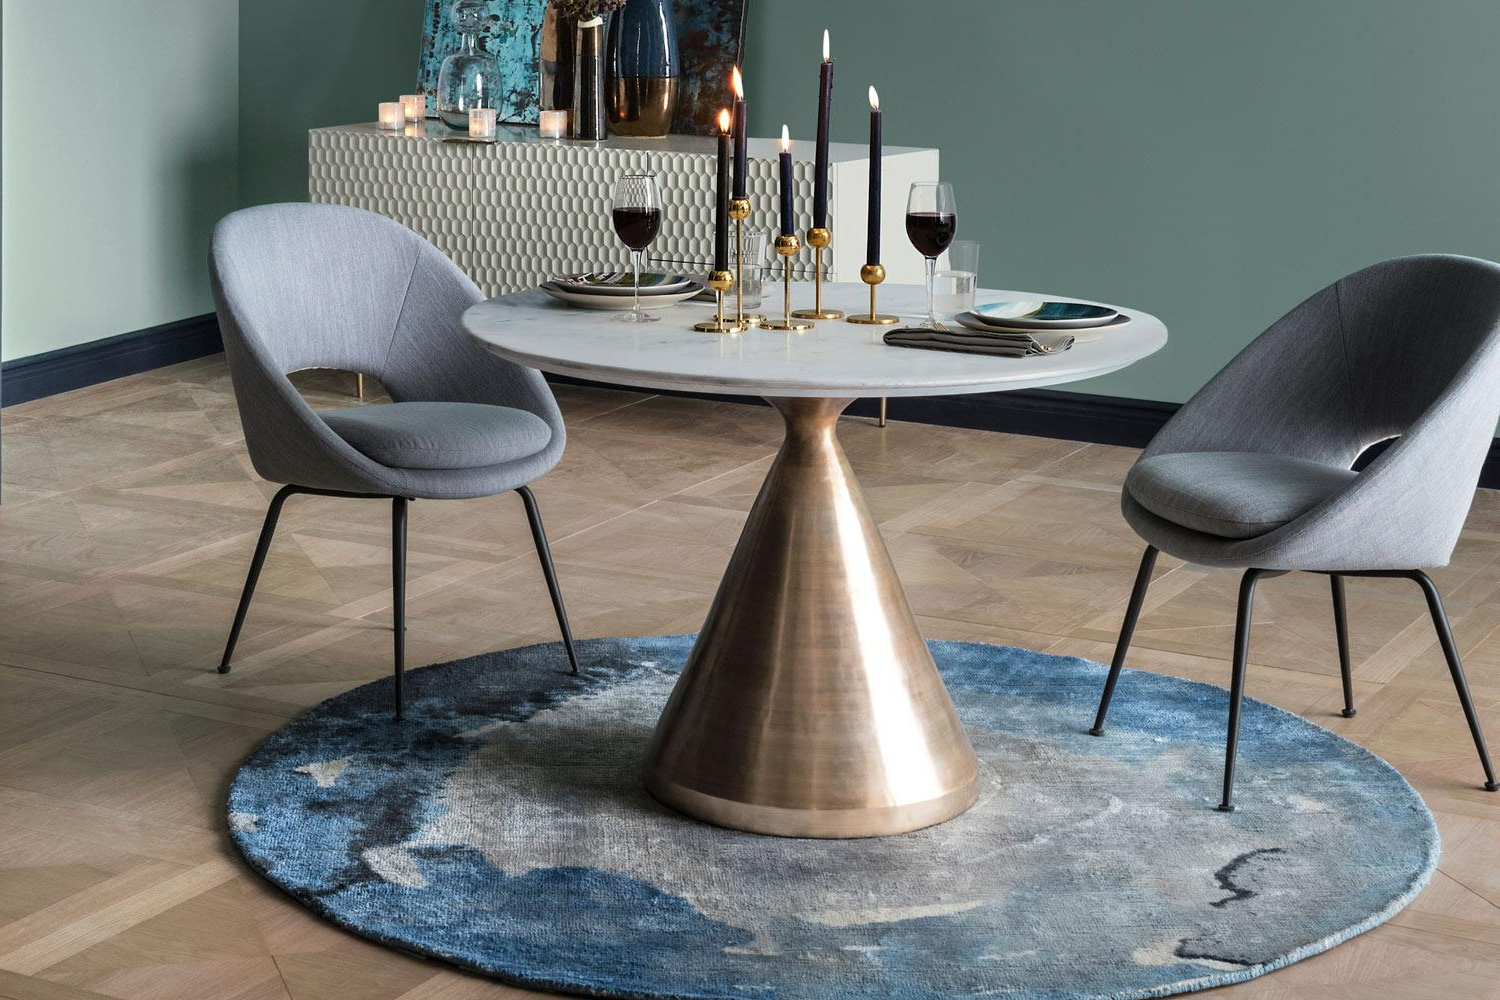 Best Dining Tables: The Best Stylish Dining Room Tables 2019 Inside Trendy Rustic Country 8 Seating Casual Dining Tables (View 13 of 25)